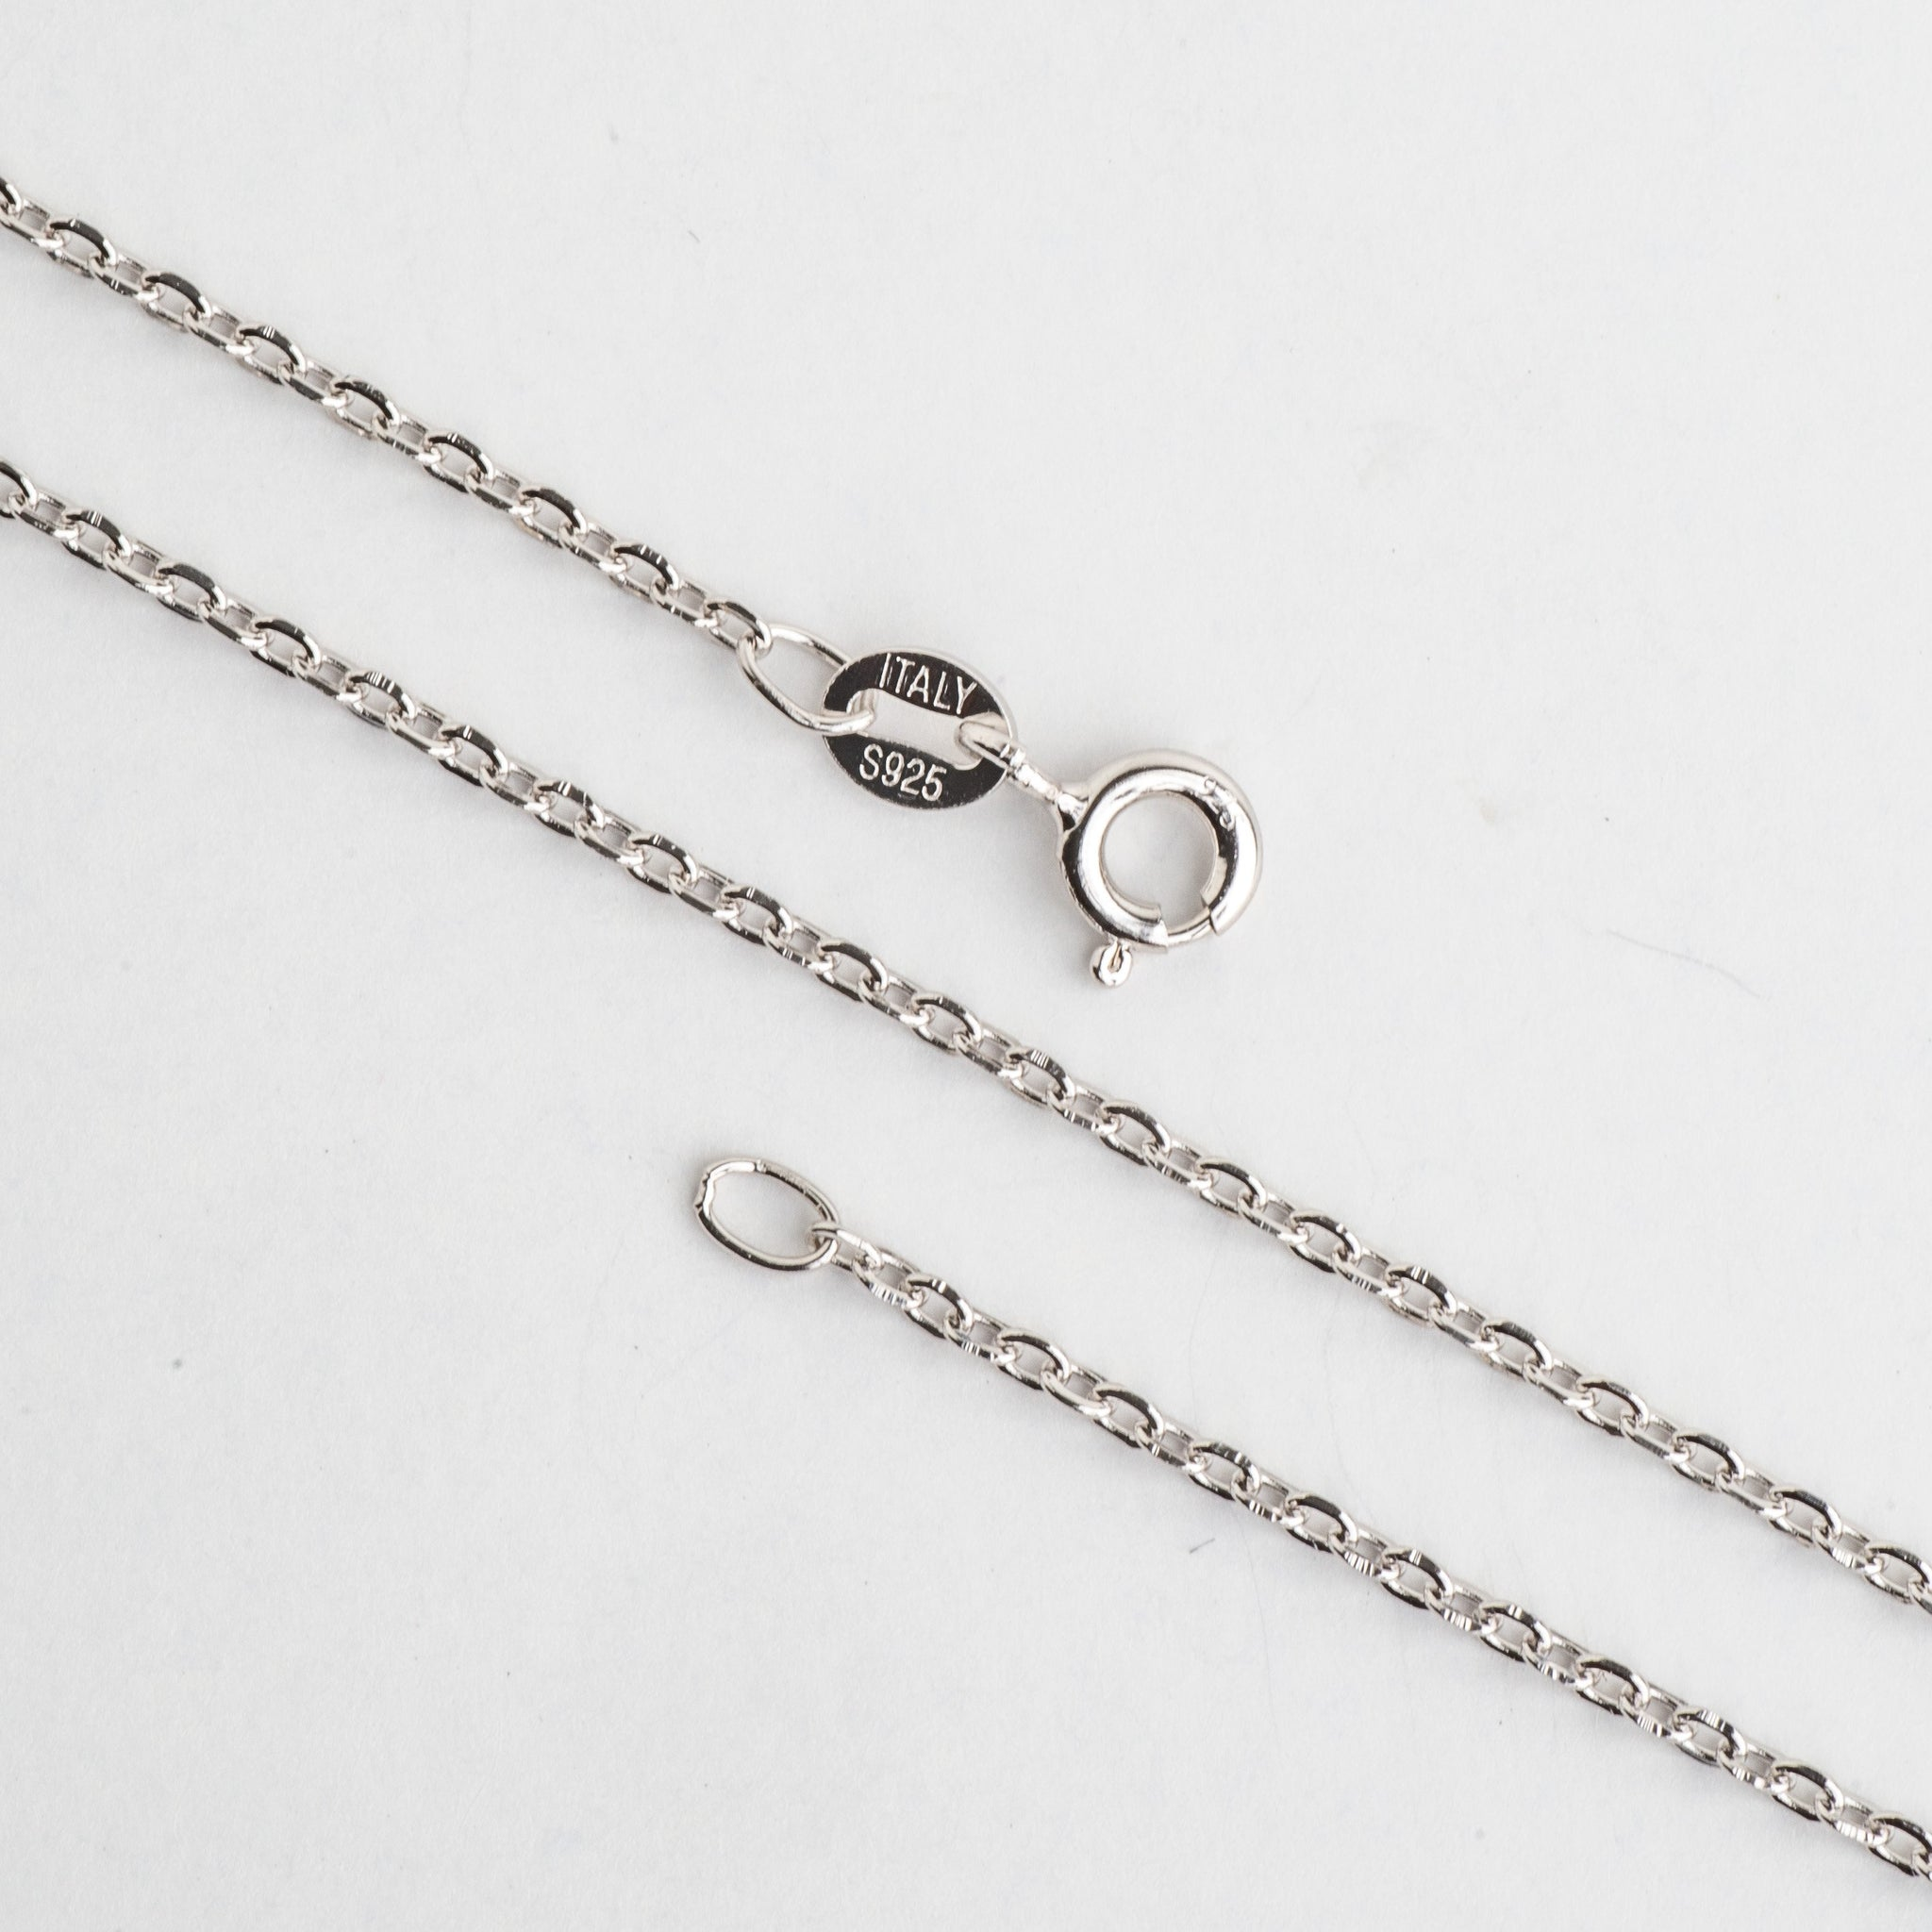 Necklace 16 inch N1ST 1.5mm Cable Chain Sterling Silver Necklace With Spring Ring Clasp Available in 3 Sizes Made in Italy .925 Sterling Silver 1.5mm Cable Chain .925 Sterling Silver Necklace With Spring Ring Clasp  N1ST16